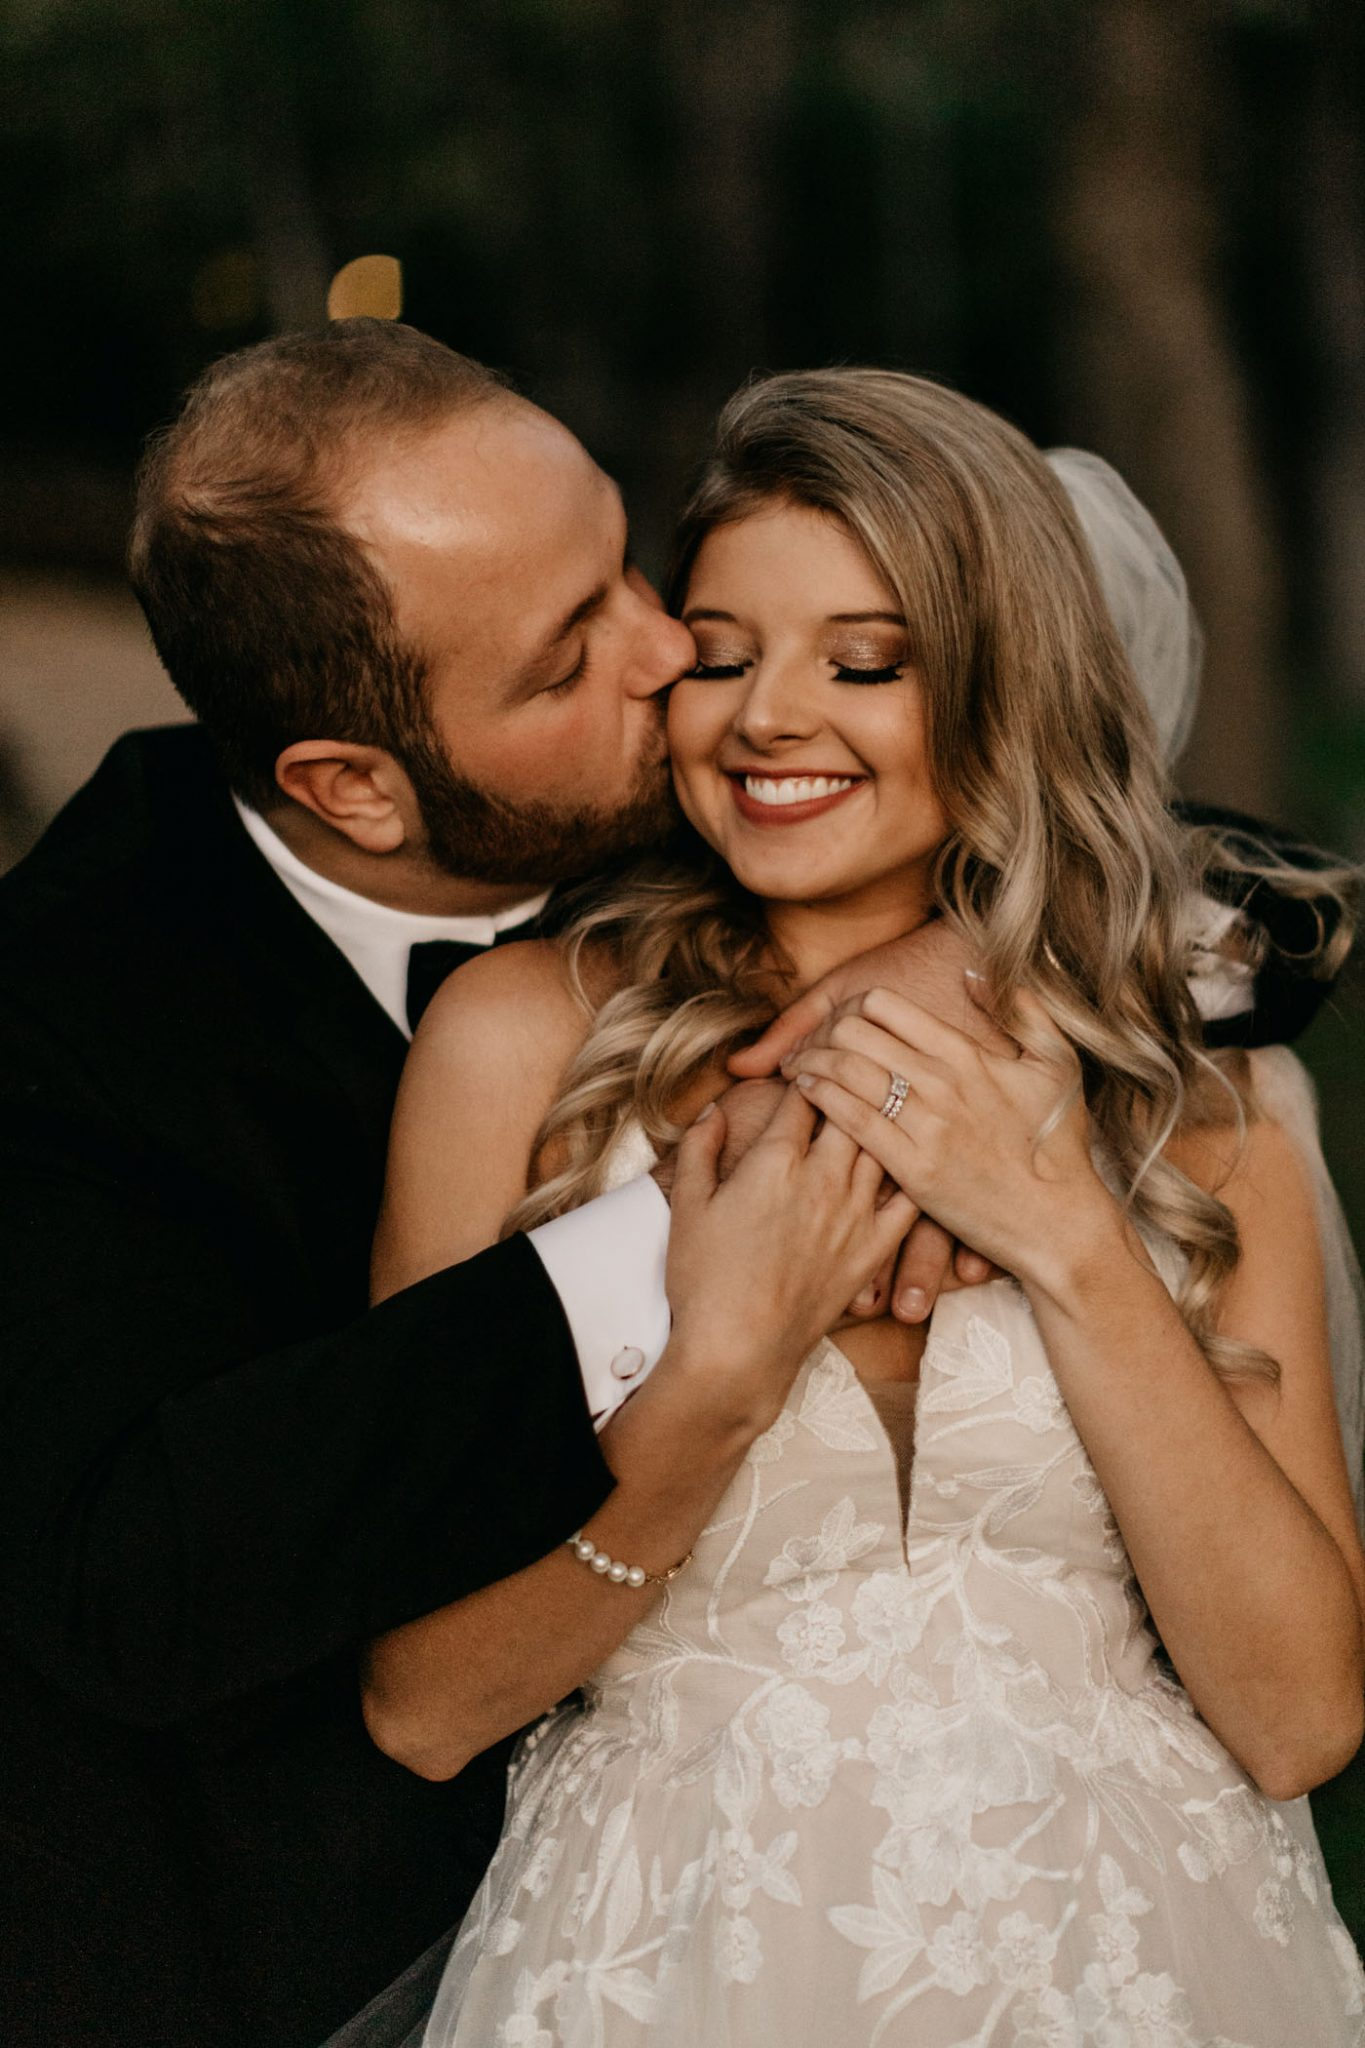 groom kissing bride on the cheek after wedding ceremony in Fort Worth